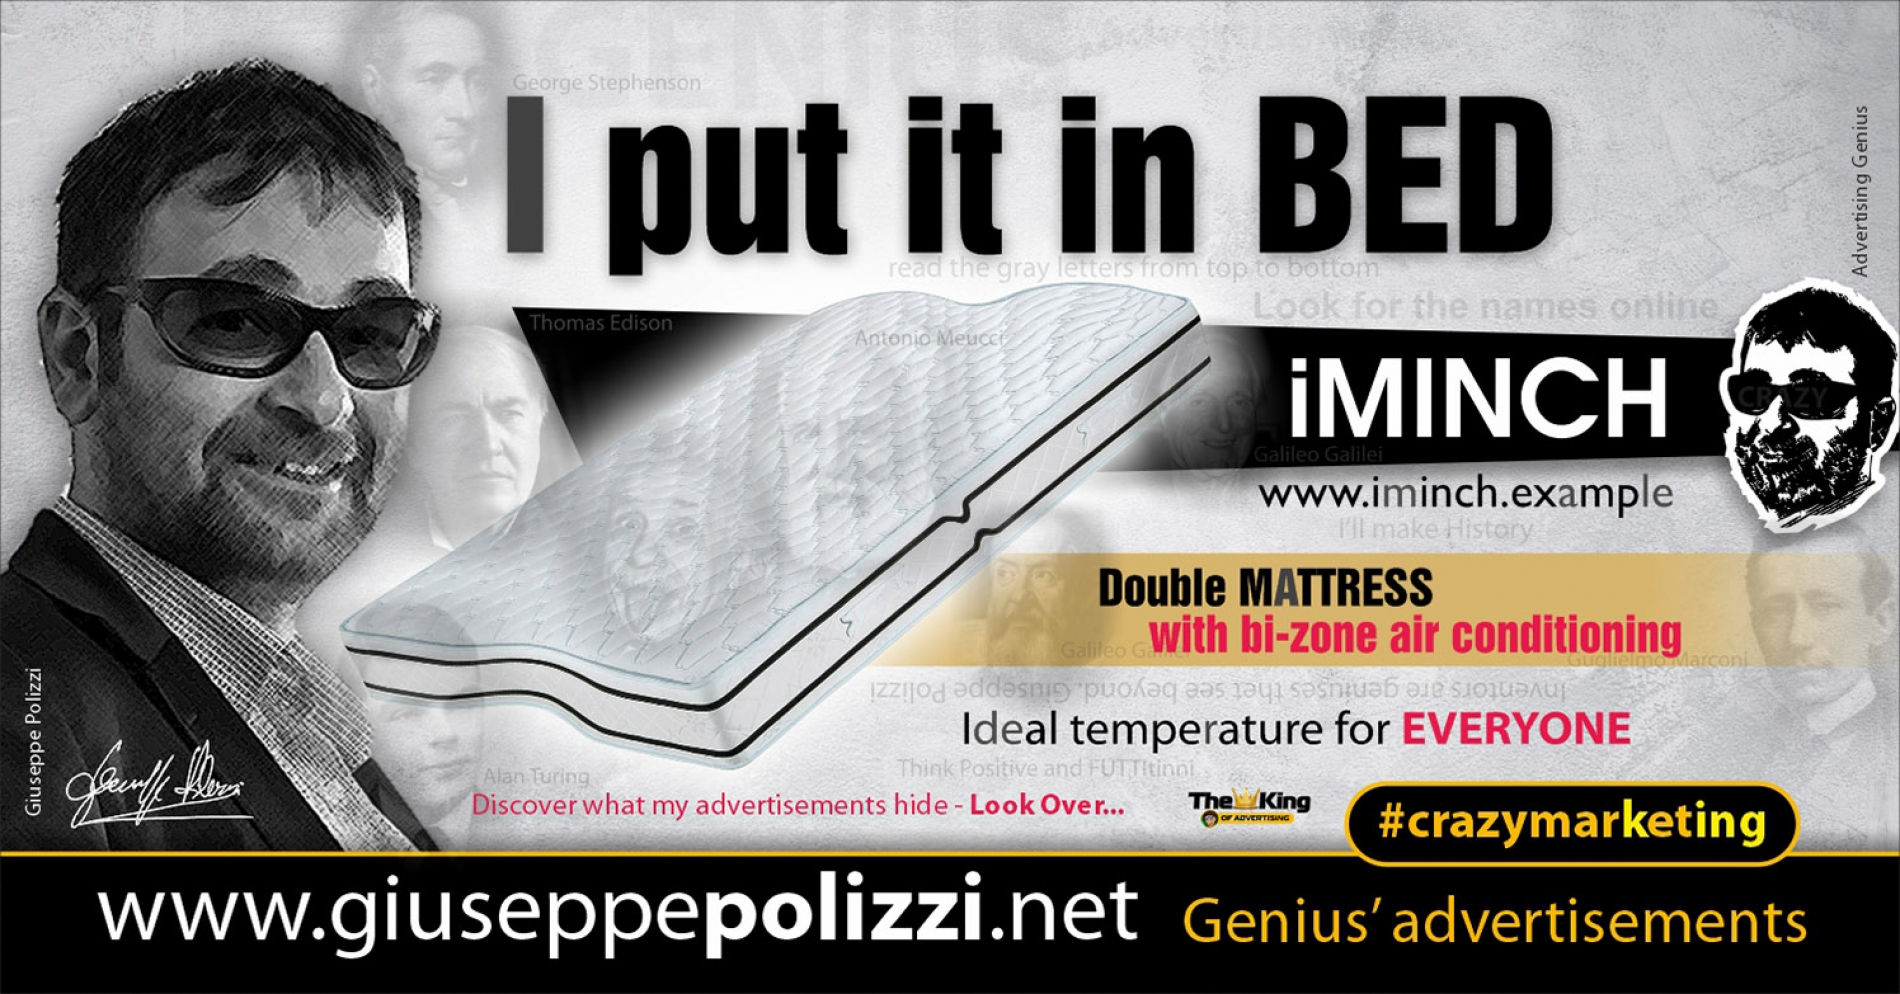 Giuseppe Polizzi CrazymarketingI put it in BED advertisements eng